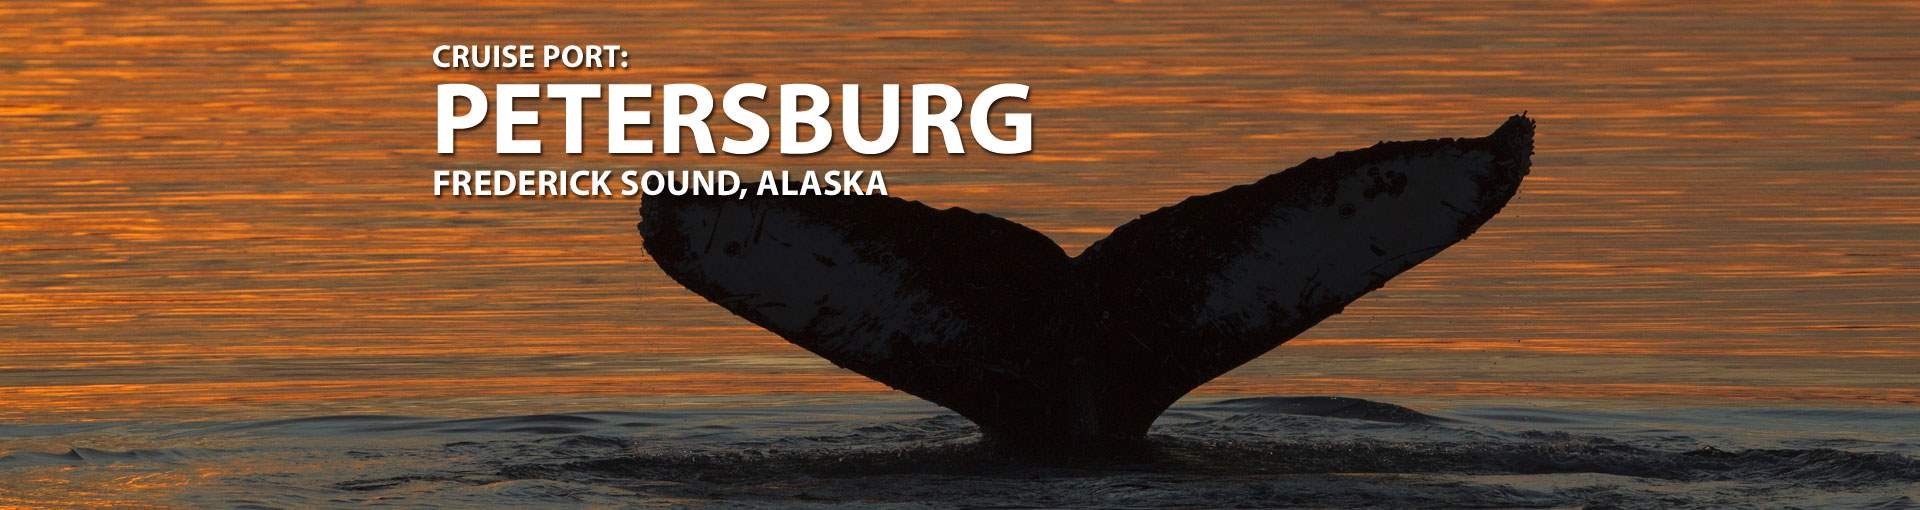 Cruises to Petersburg (Frederick Sound), Alaska